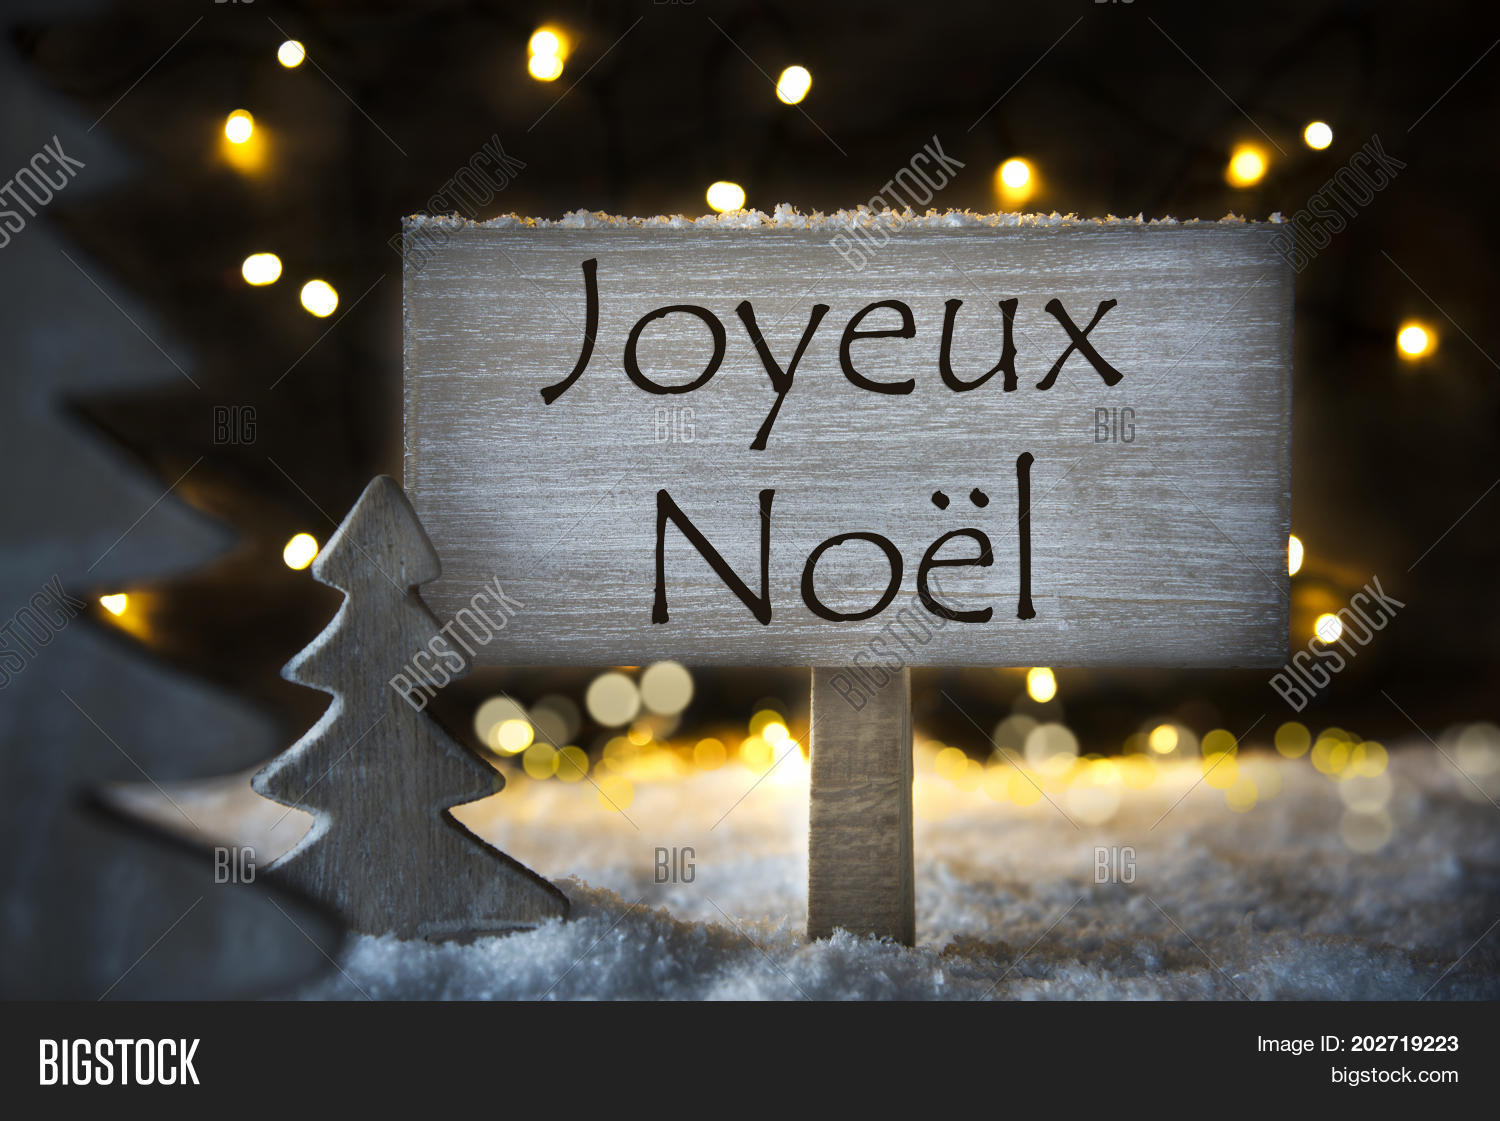 Sign French Text Image Photo Free Trial Bigstock